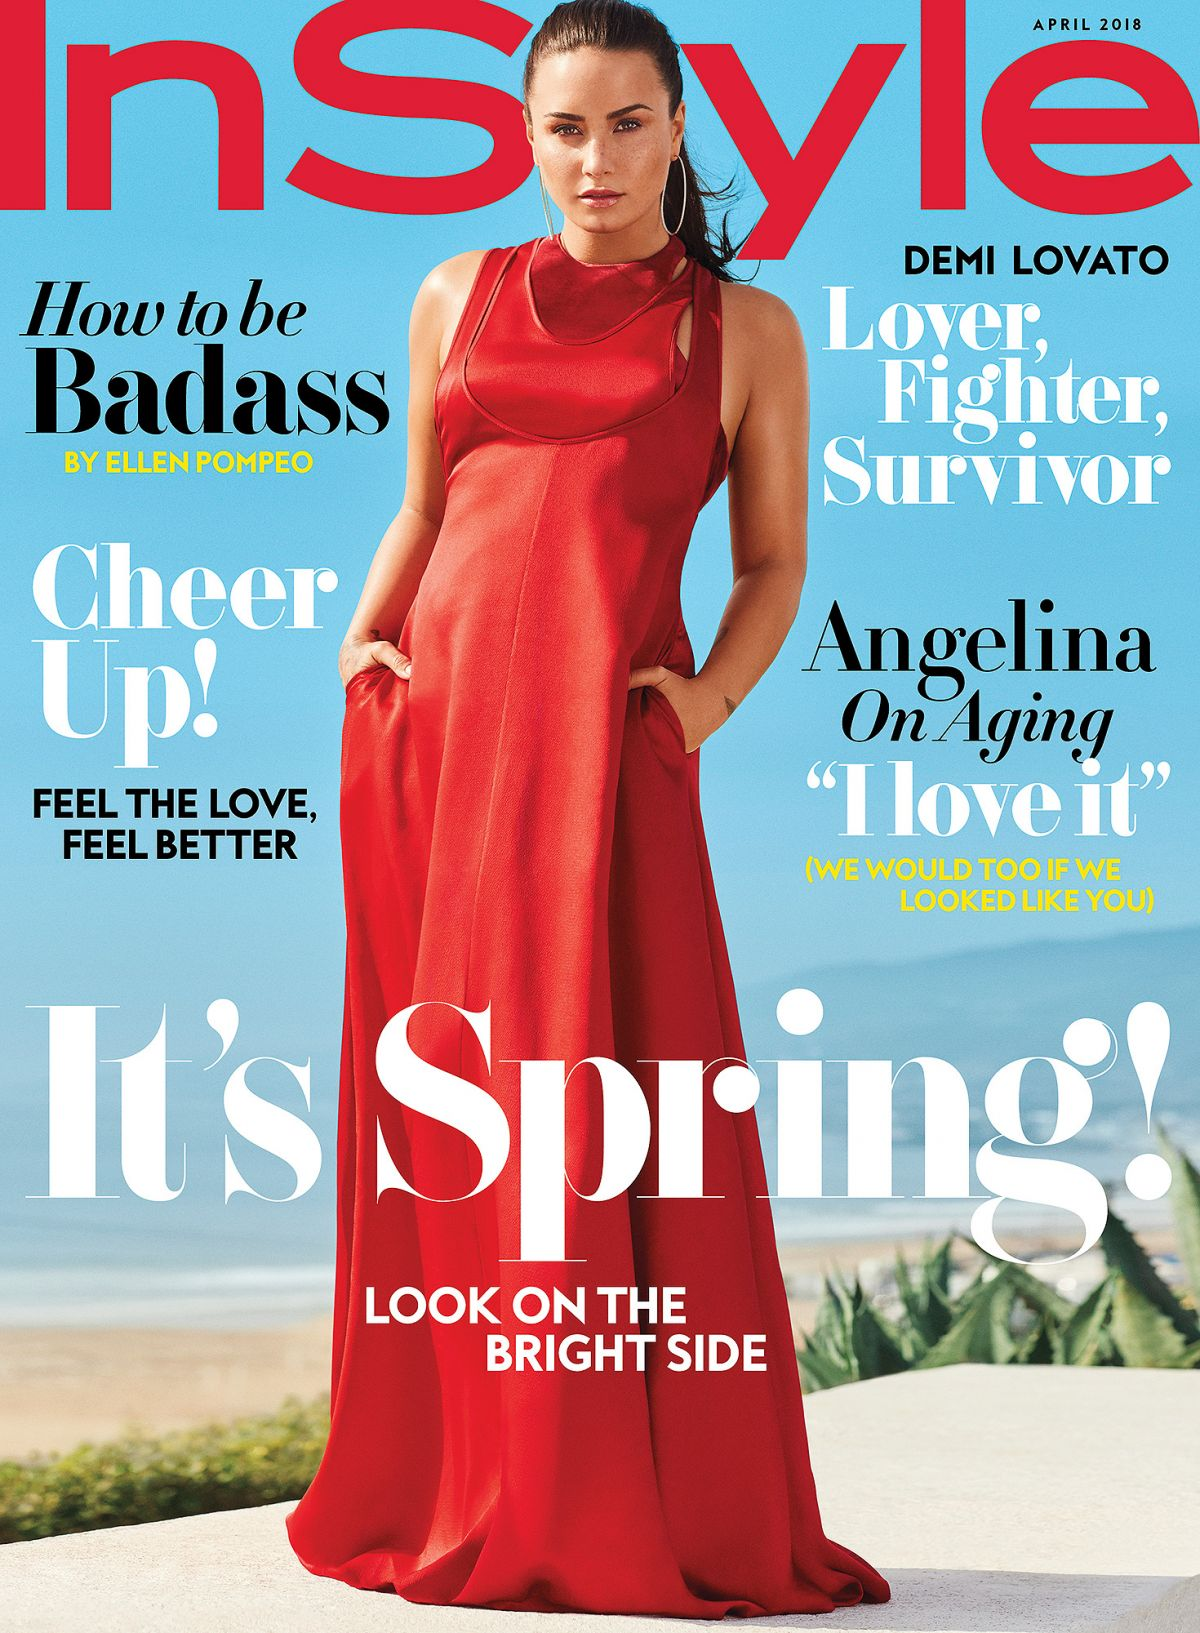 Demi Lovato For Instyle Magazine April 2018 Hawtcelebs